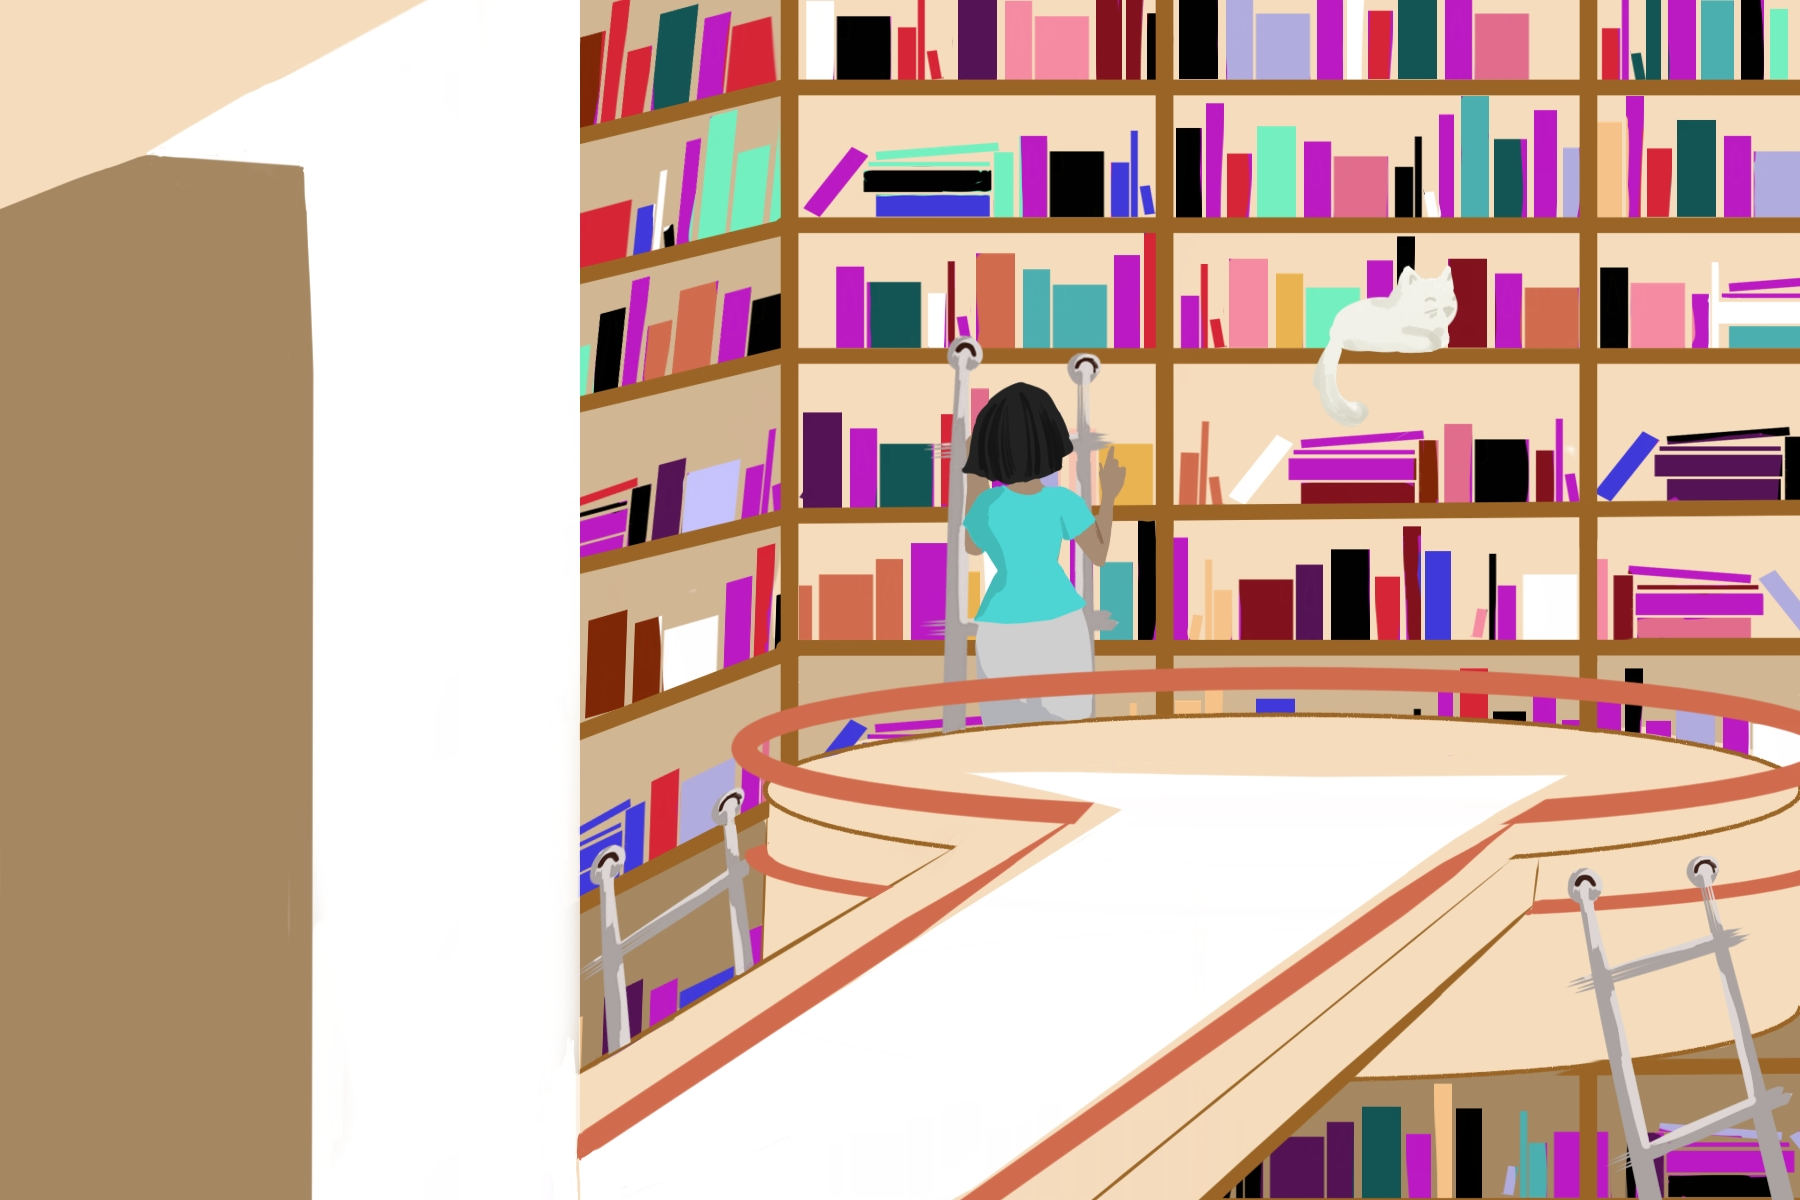 An article discussing the importance of viewing cinema as art, Kanopy is a digital library giving access to users to a variety of films as seen in the illustration above depicting a women browsing library shelves.